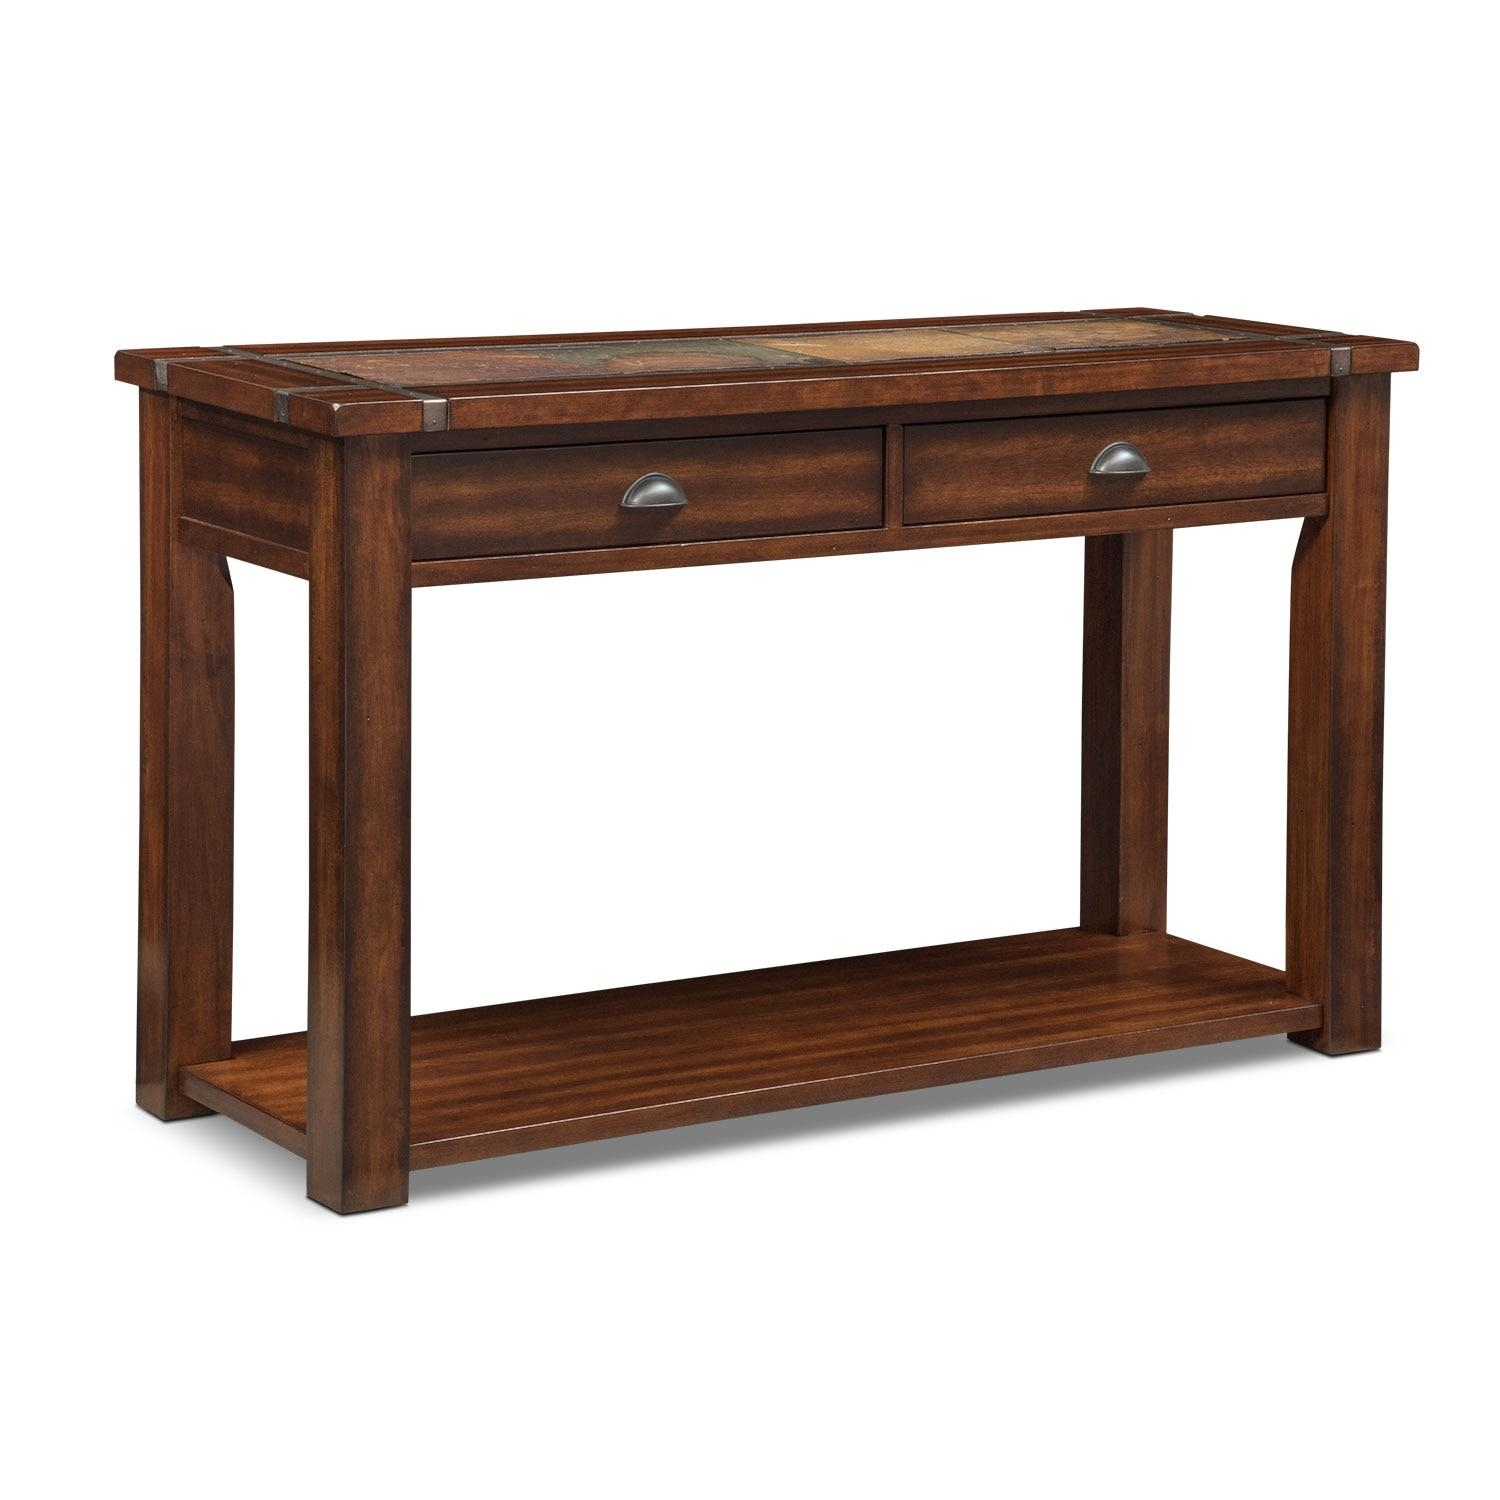 Slate Ridge Sofa Table – Cherry | Value City Furniture With Regard To Slate Sofa Tables (Image 9 of 20)